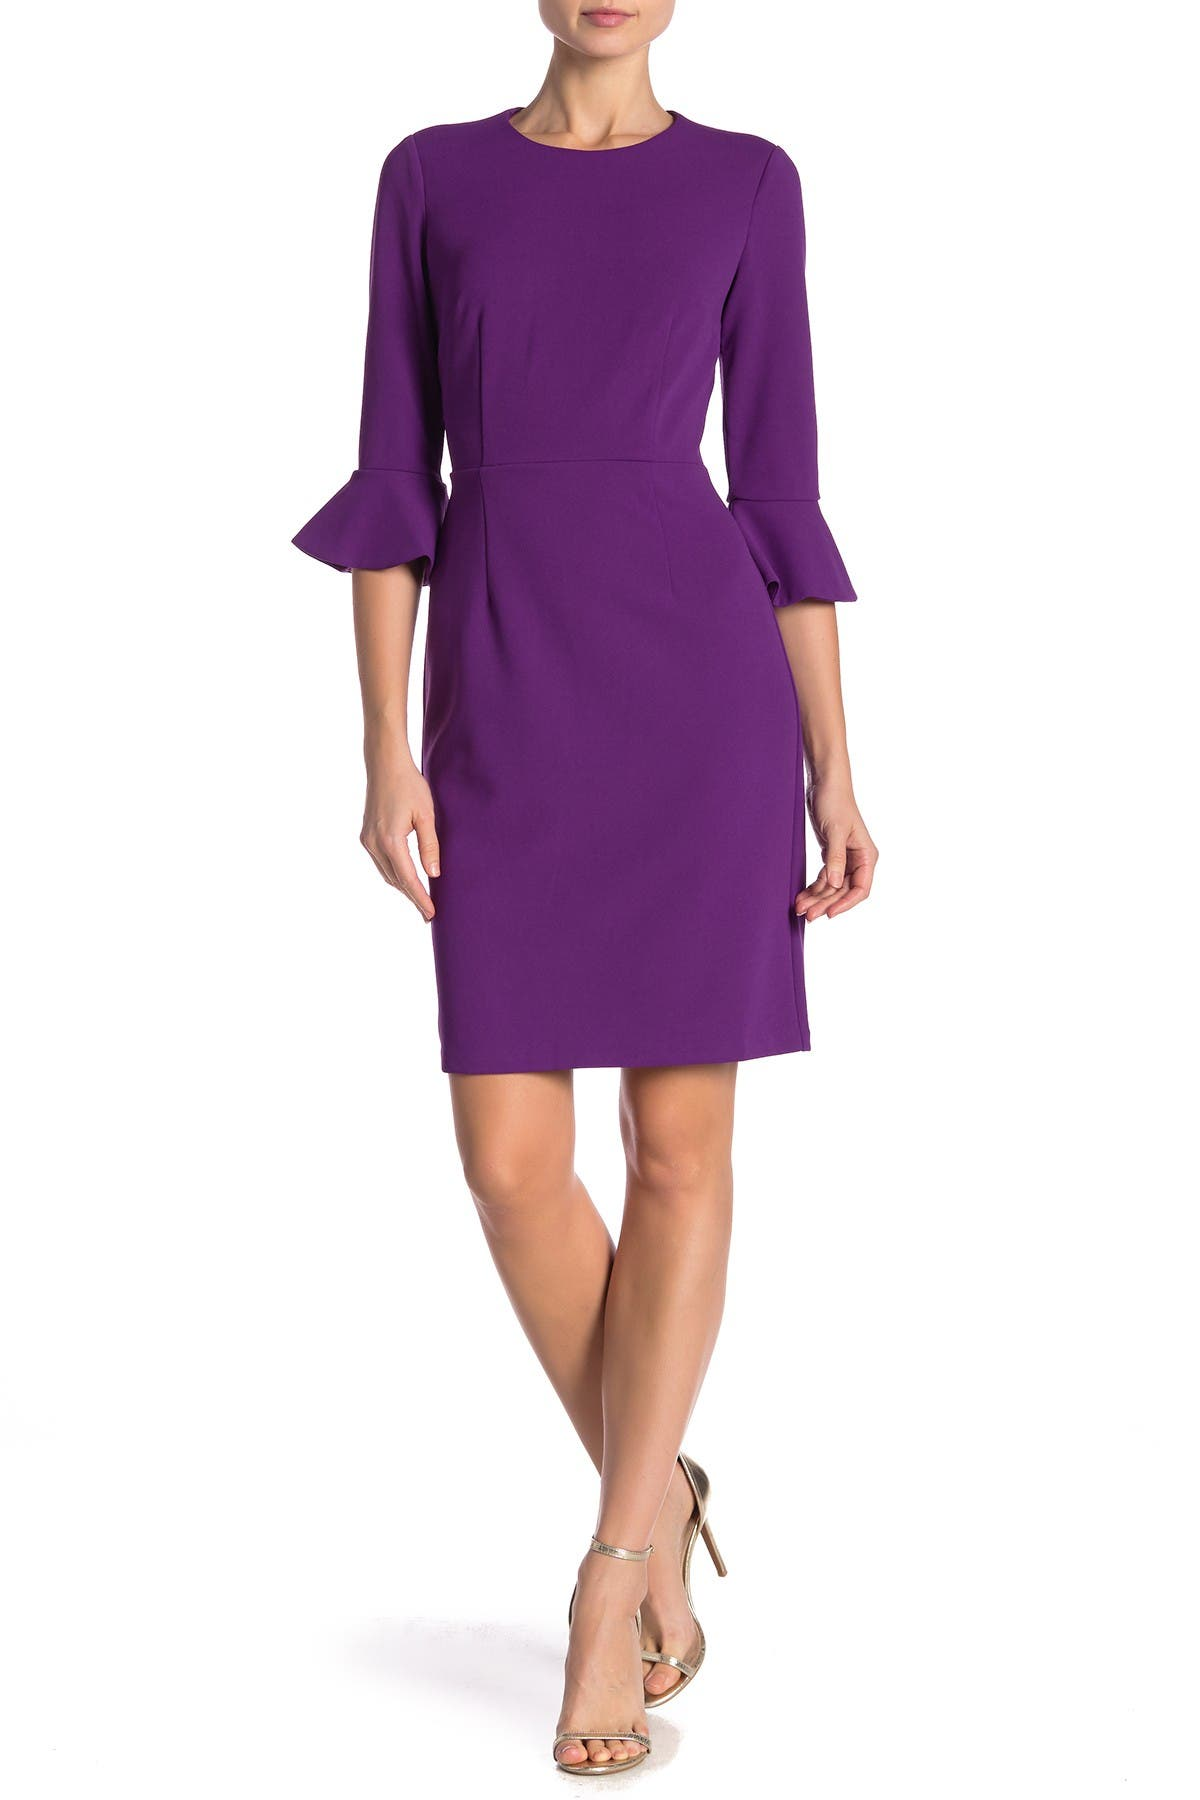 Image of Donna Morgan Ruffle Cuff Sheath Dress